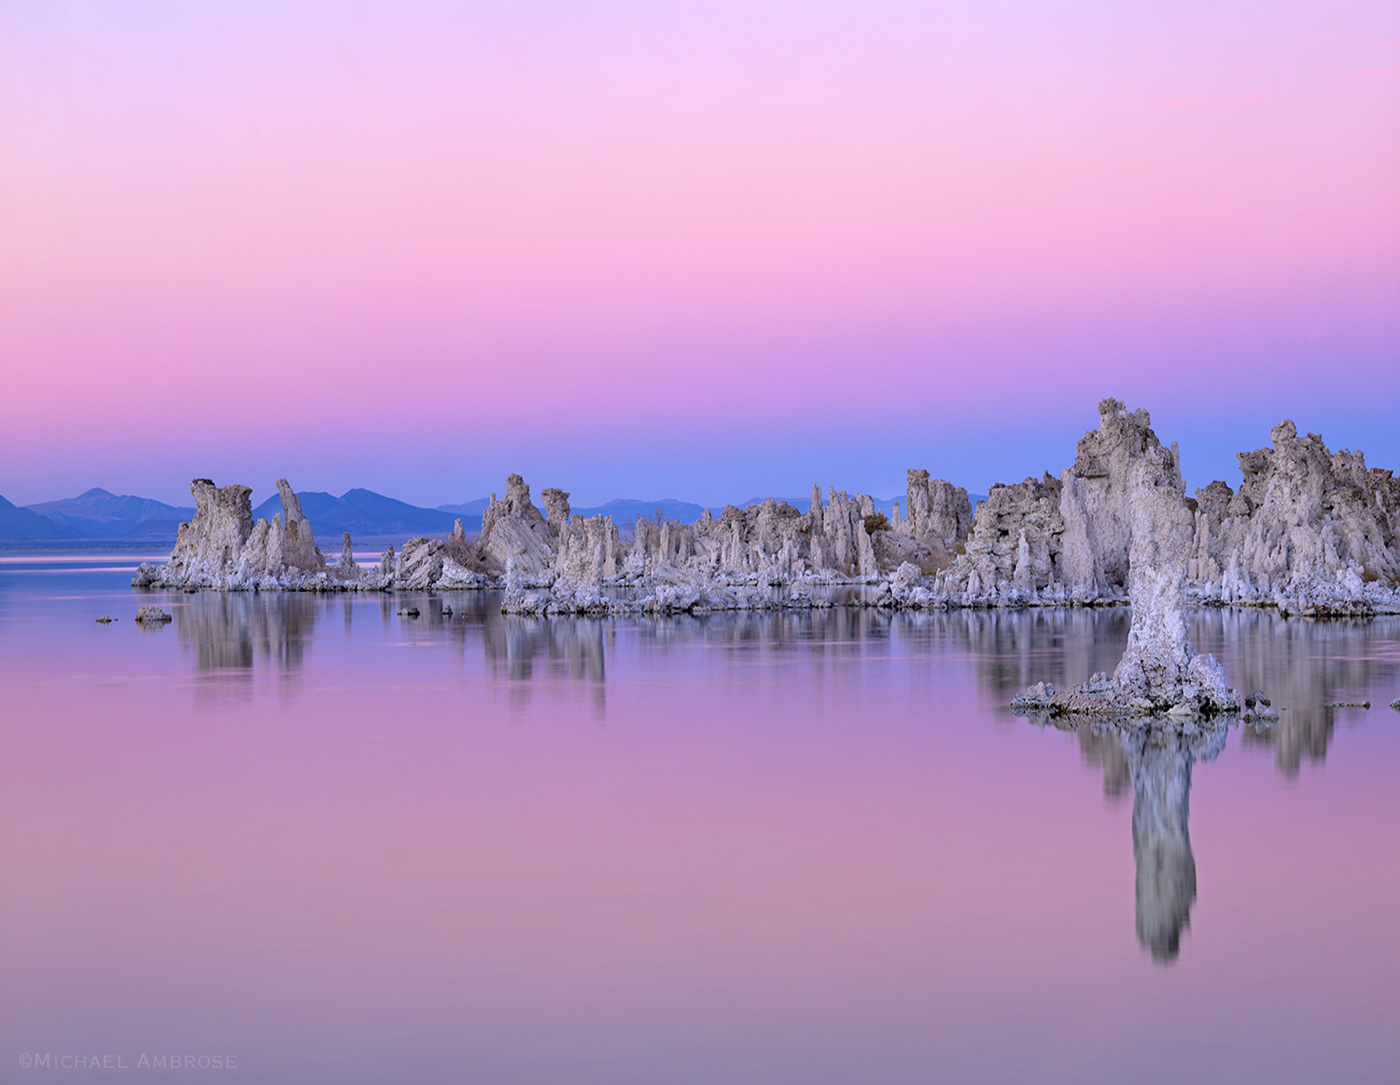 Tufa towers divide the eastern Sierra  pink sunset sky from Mono lake in Lee Vining, California.